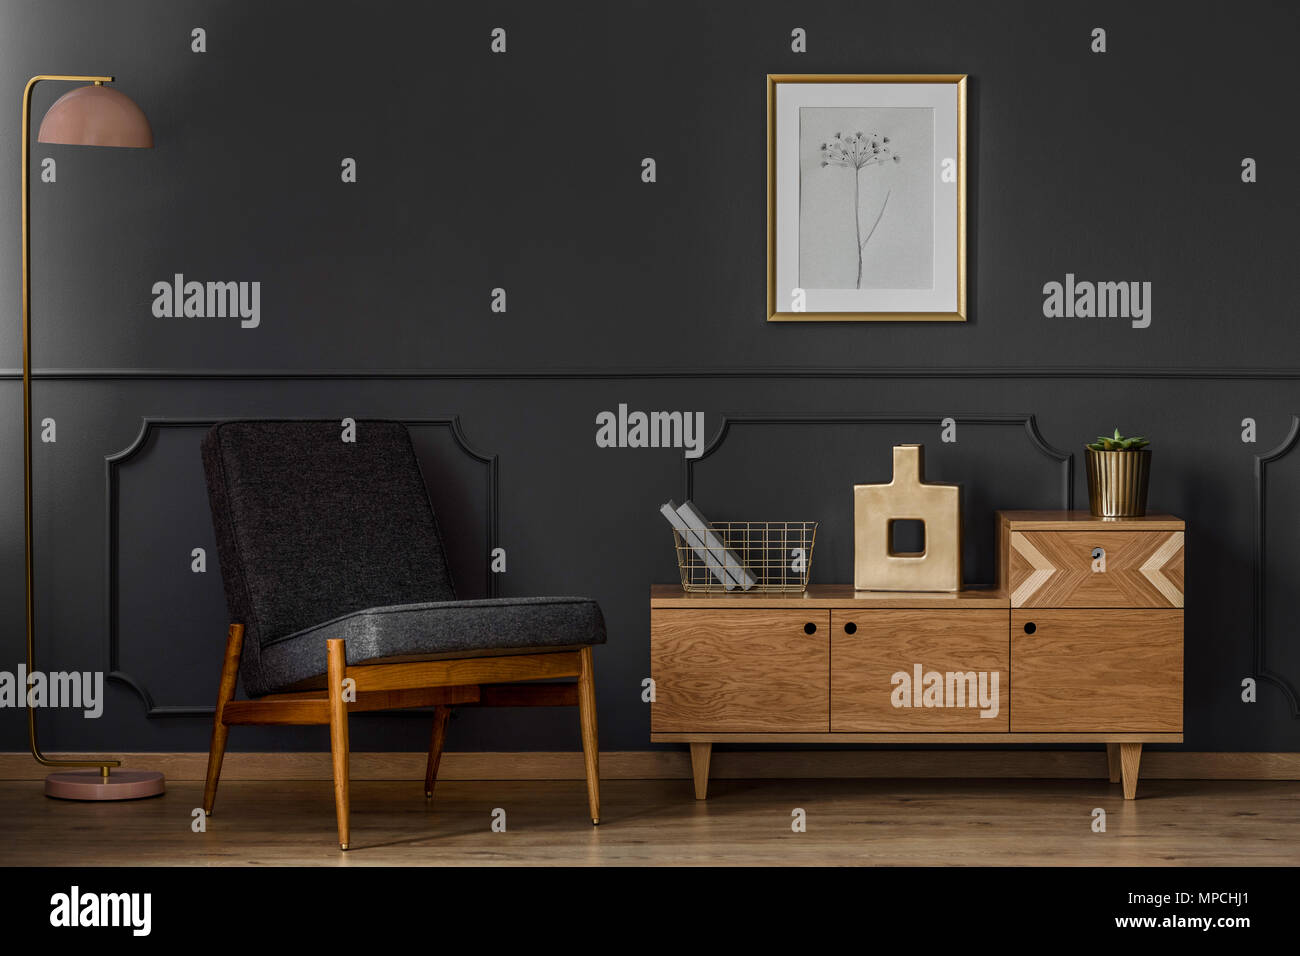 Dark Retro Living Room Interior Concept With Black Chair Lamp Poster Cabinet And Wooden Floor Stock Photo Alamy